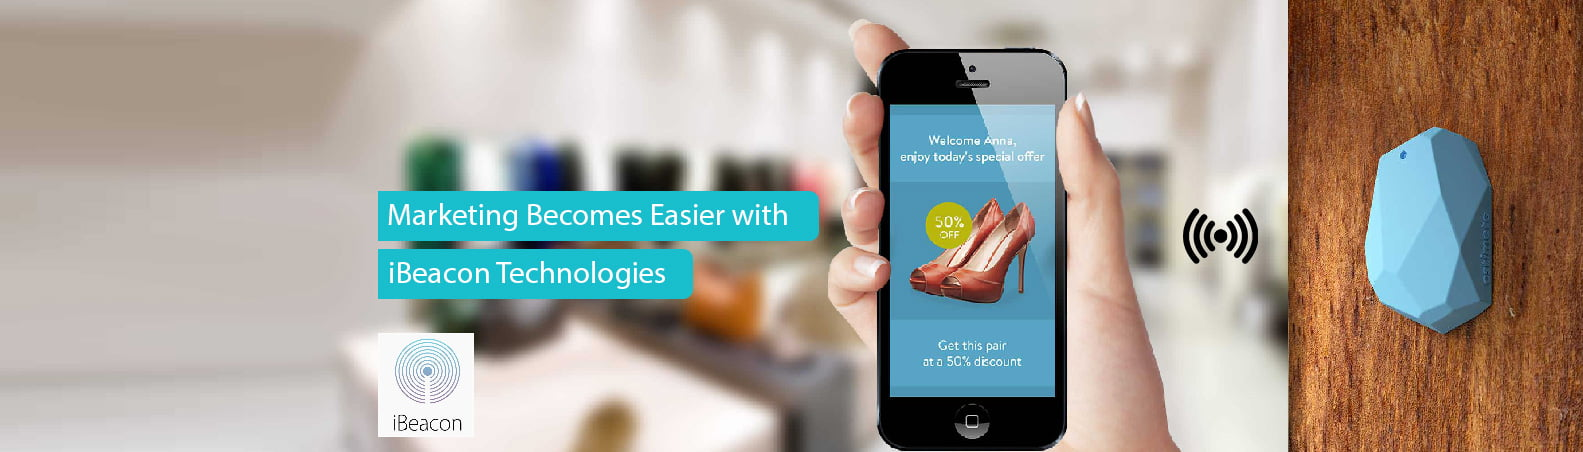 Marketing becomes easier with iBeacon Technologies